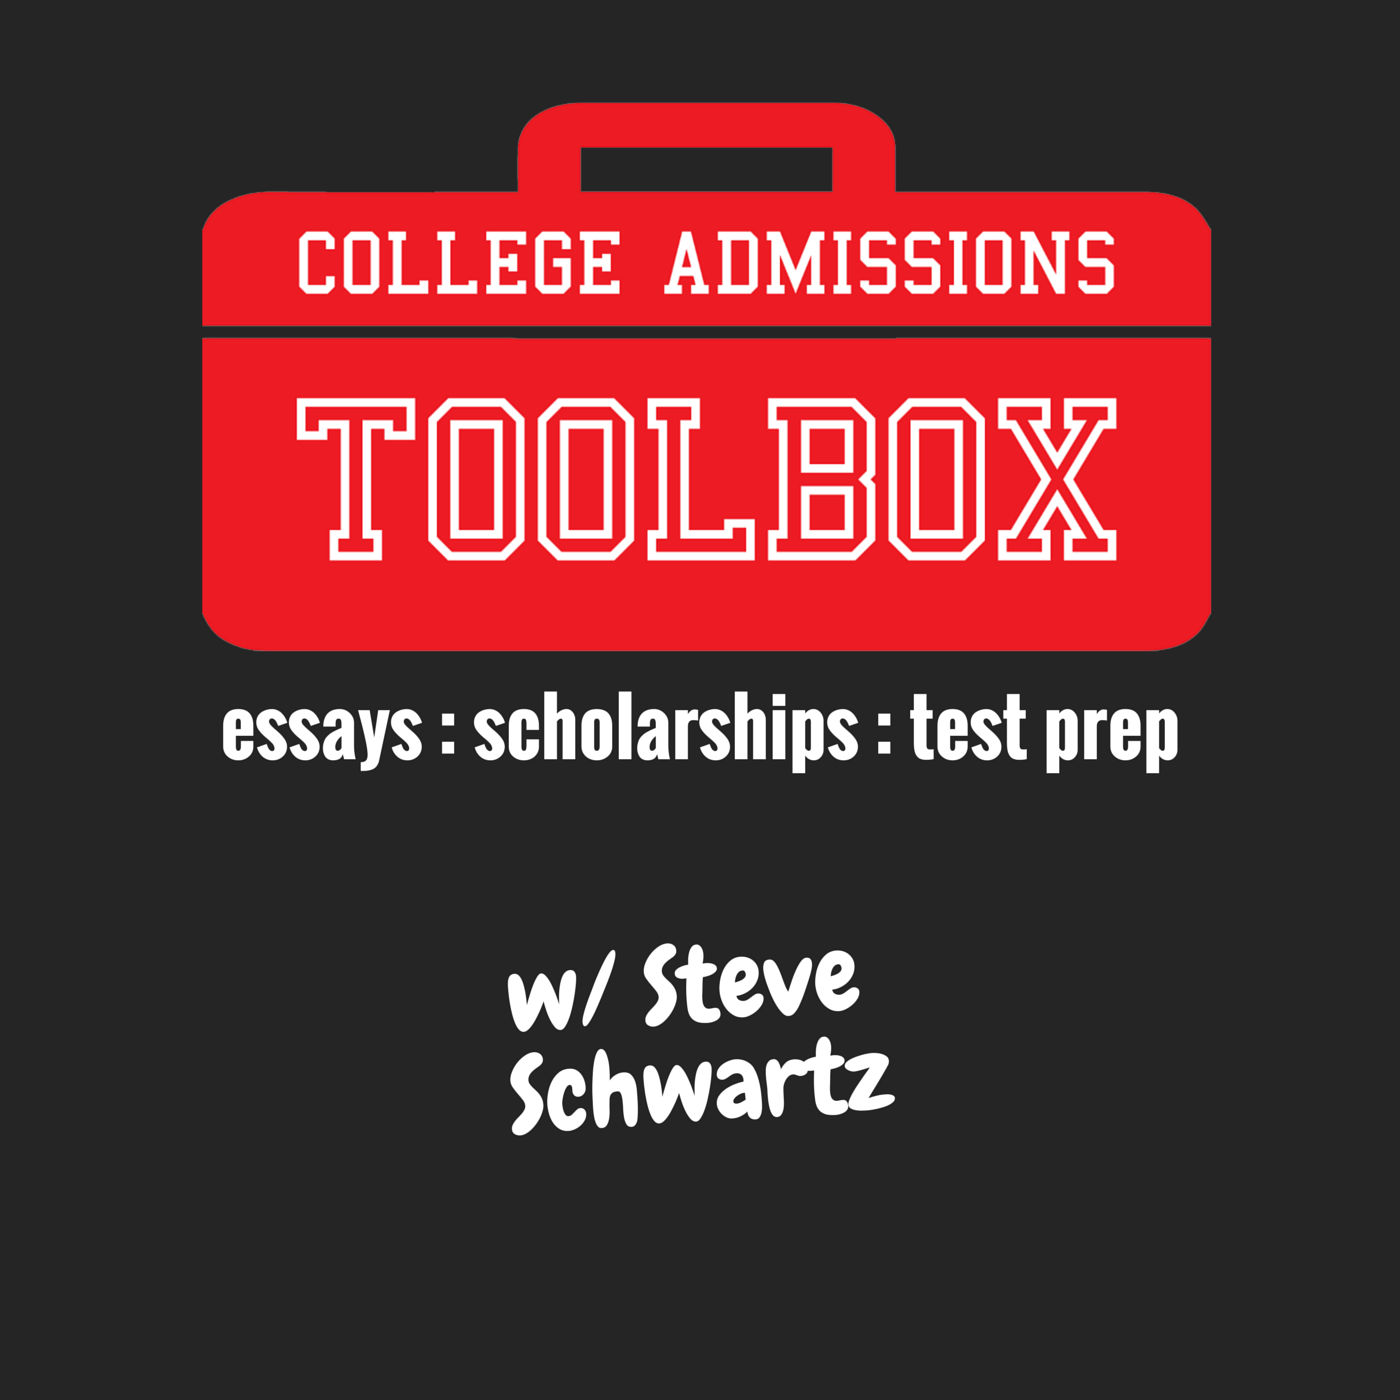 Professional help with college admission essays prompts